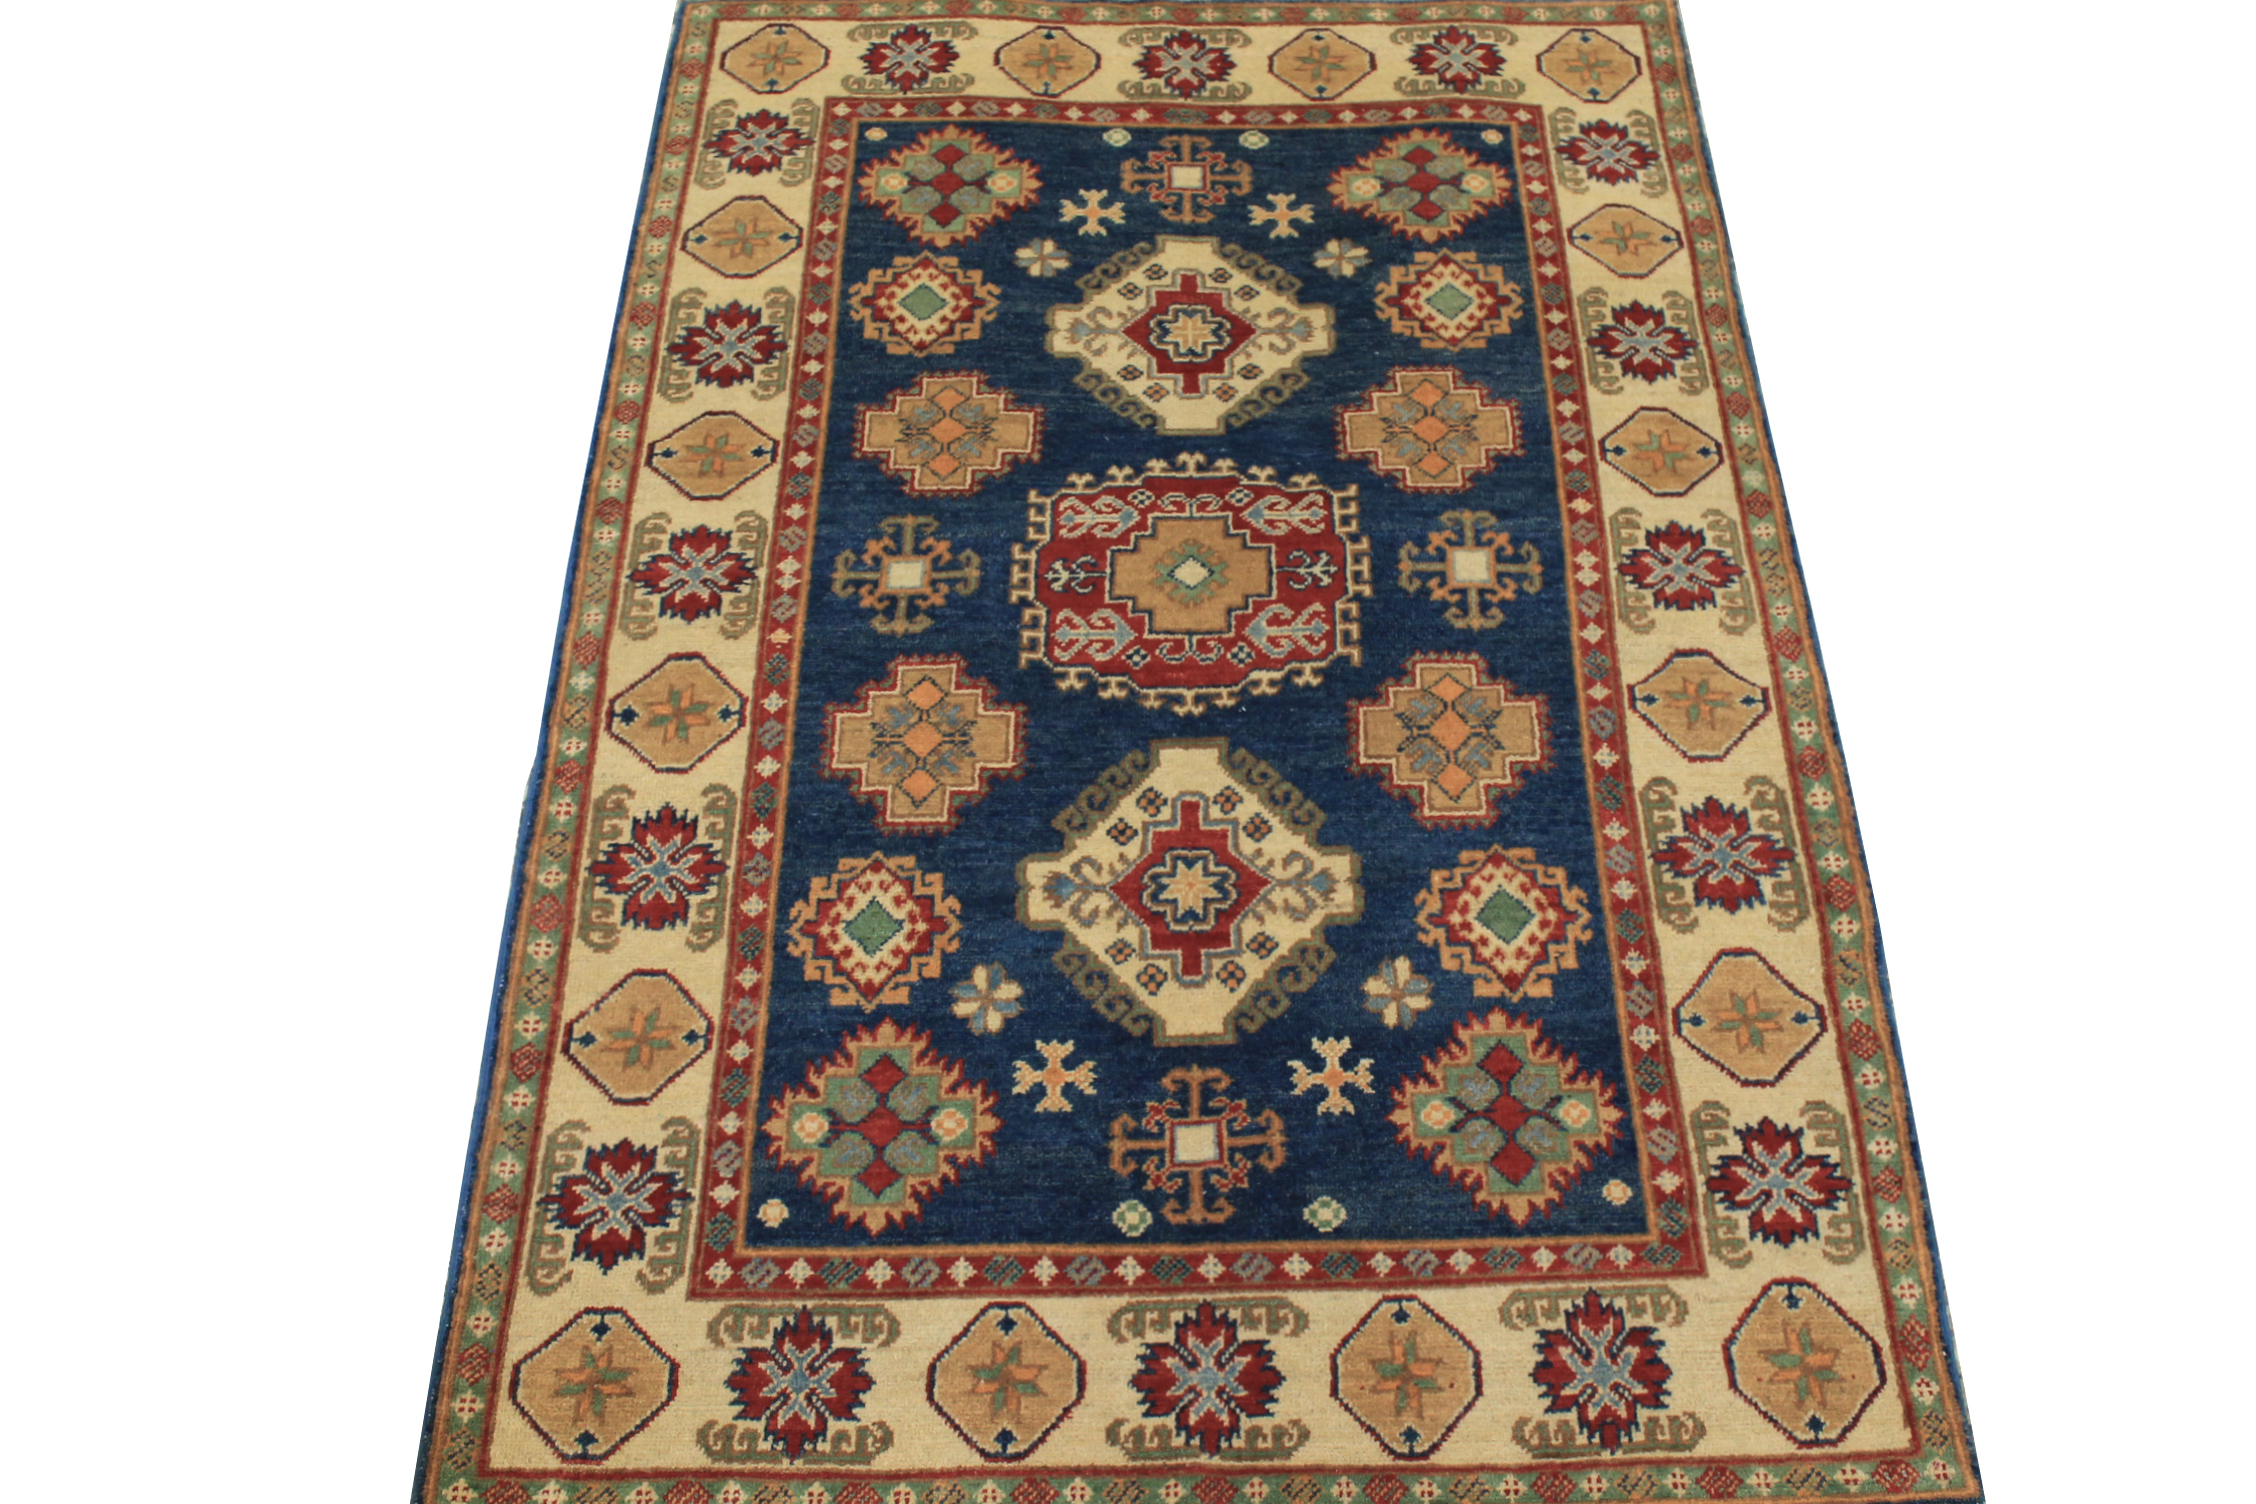 4x6 Kazak Hand Knotted Wool Area Rug - MR024535